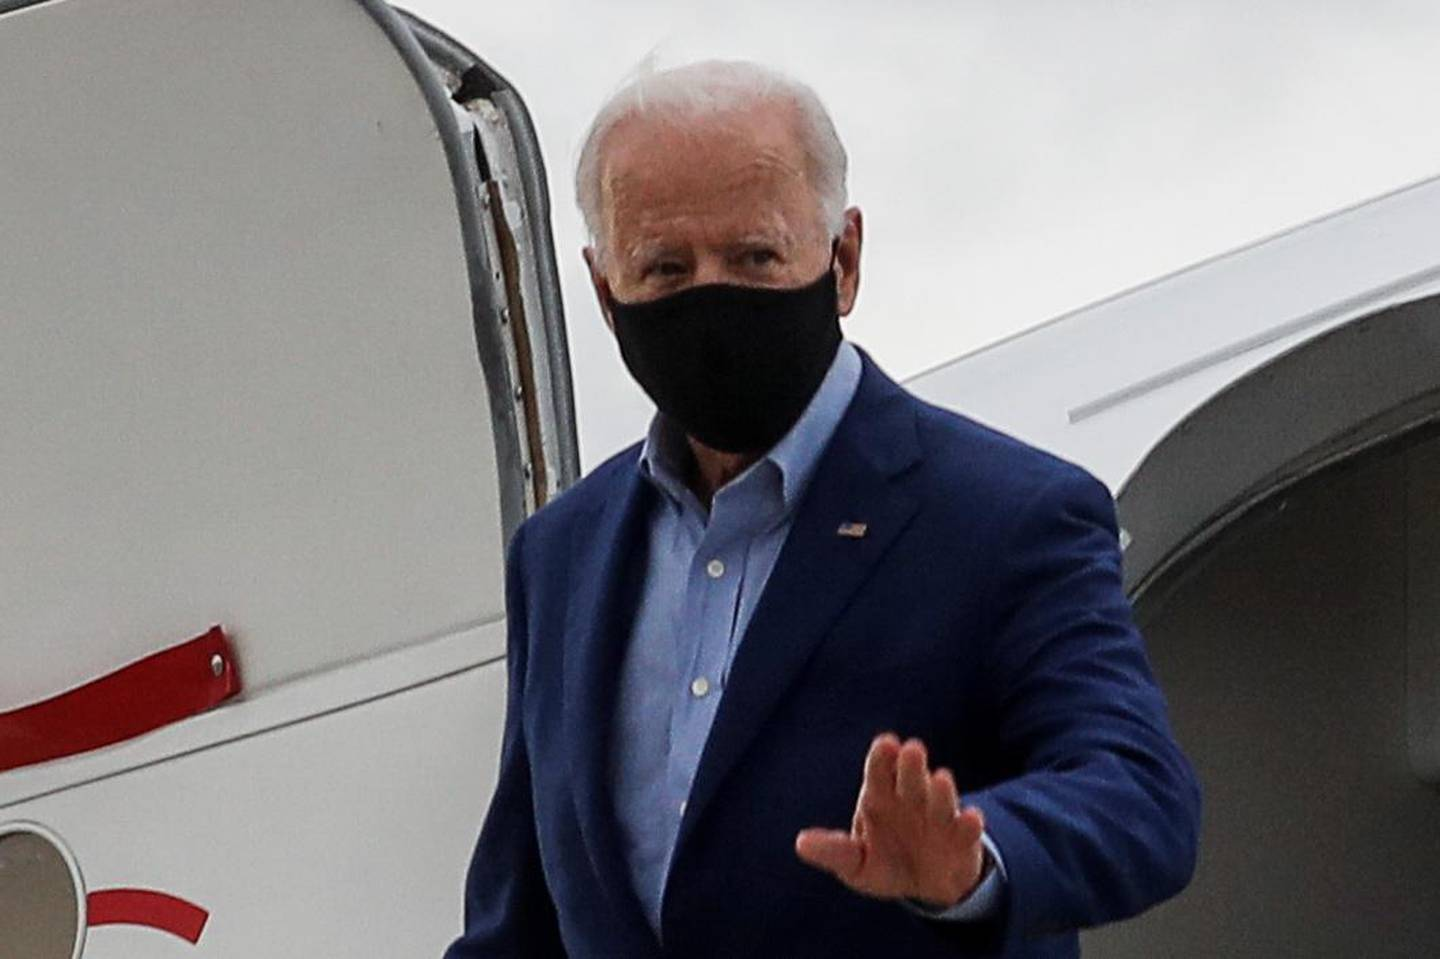 Democratic U.S. presidential nominee Joe Biden disembarks from his campaign plane as he arrives for his first presidential debate with U.S. President Donald Trump at Cleveland Hopkins International Airport in Cleveland, Ohio, U.S., September 29, 2020. REUTERS/Mike Segar